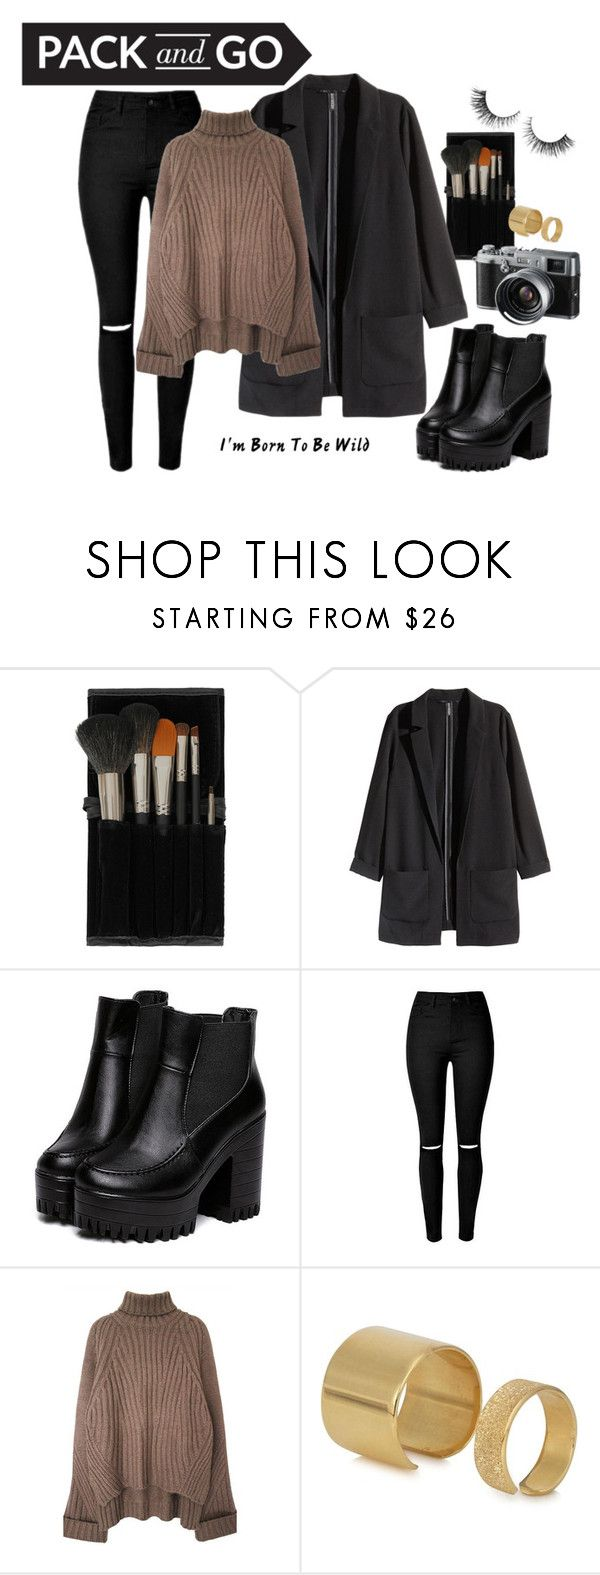 Pack and Go: Milan by neuzaalexa on Polyvore featuring H&M, Maria Francesca Pepe, Topshop, Rimini, Fuji, Børn and Packandgo